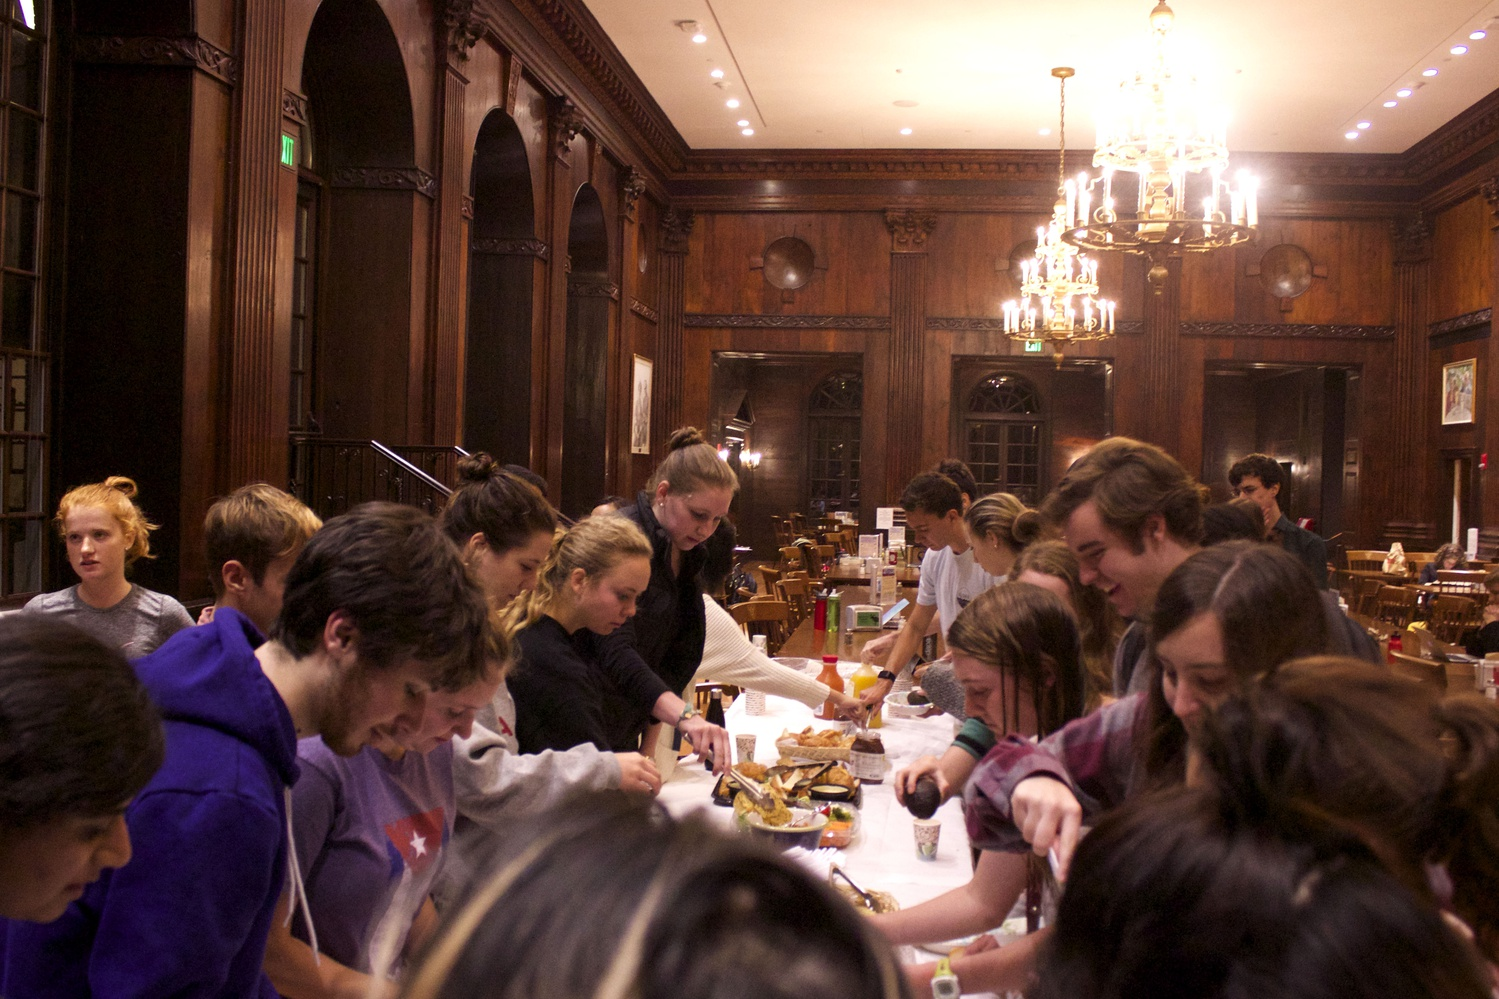 Students partake in a study break hosted by the Dunster faculty deans which featured make-your-own-guacamole, croissants, and more. As the strike continues, many Houses are hosting such events to supplement their students' diets.